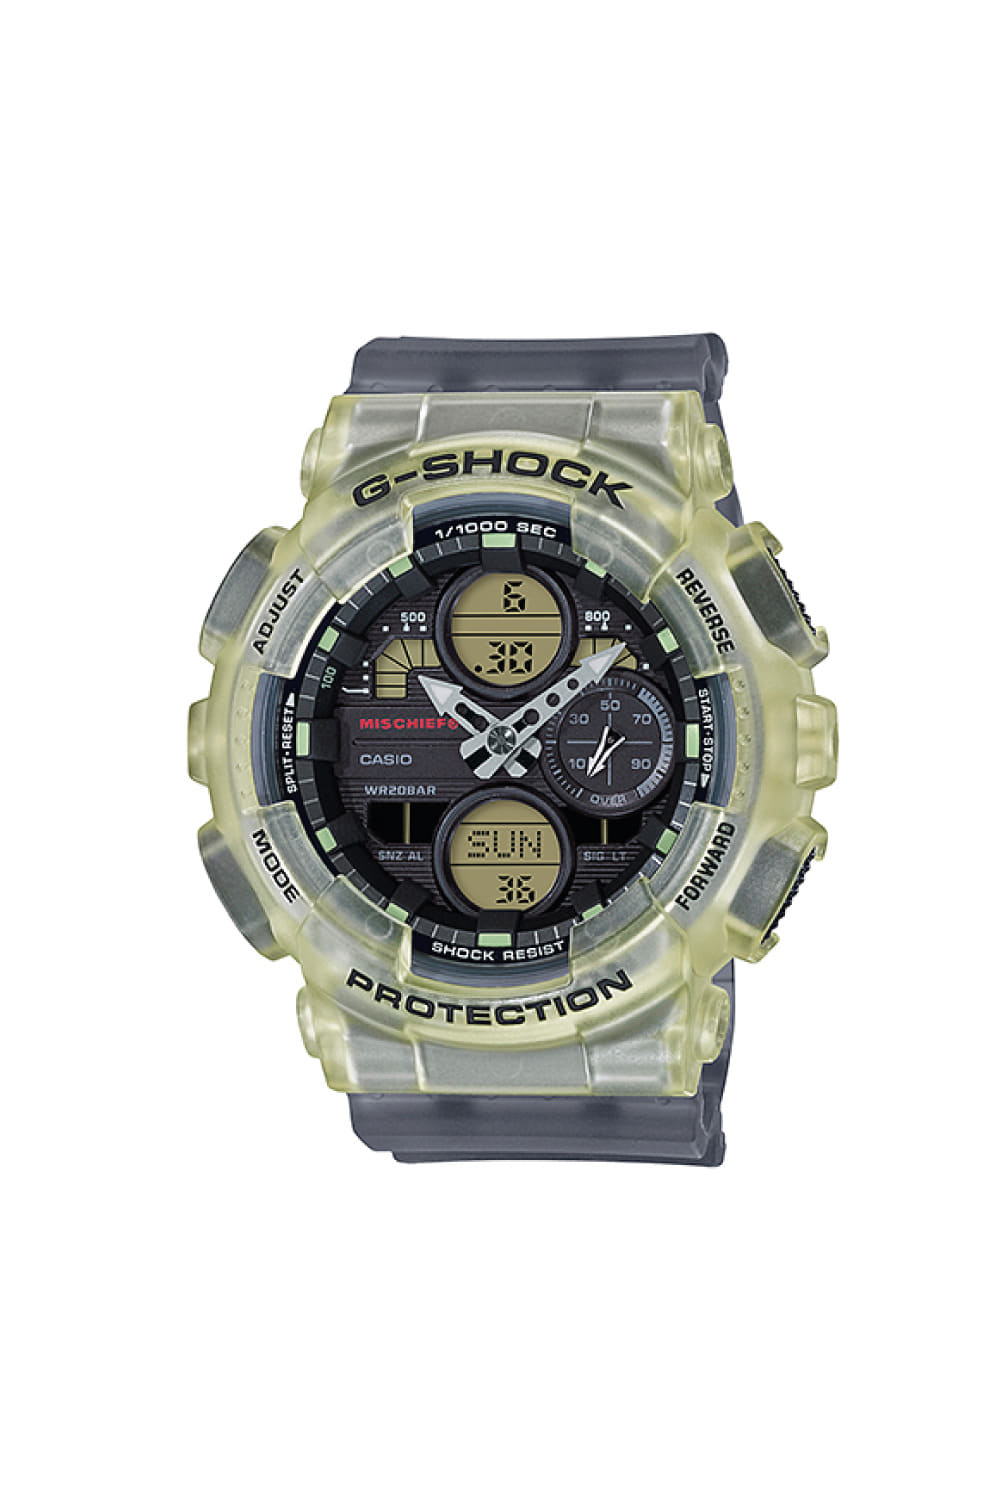 CASIO X MSCHF_GMA-S140MC-1A